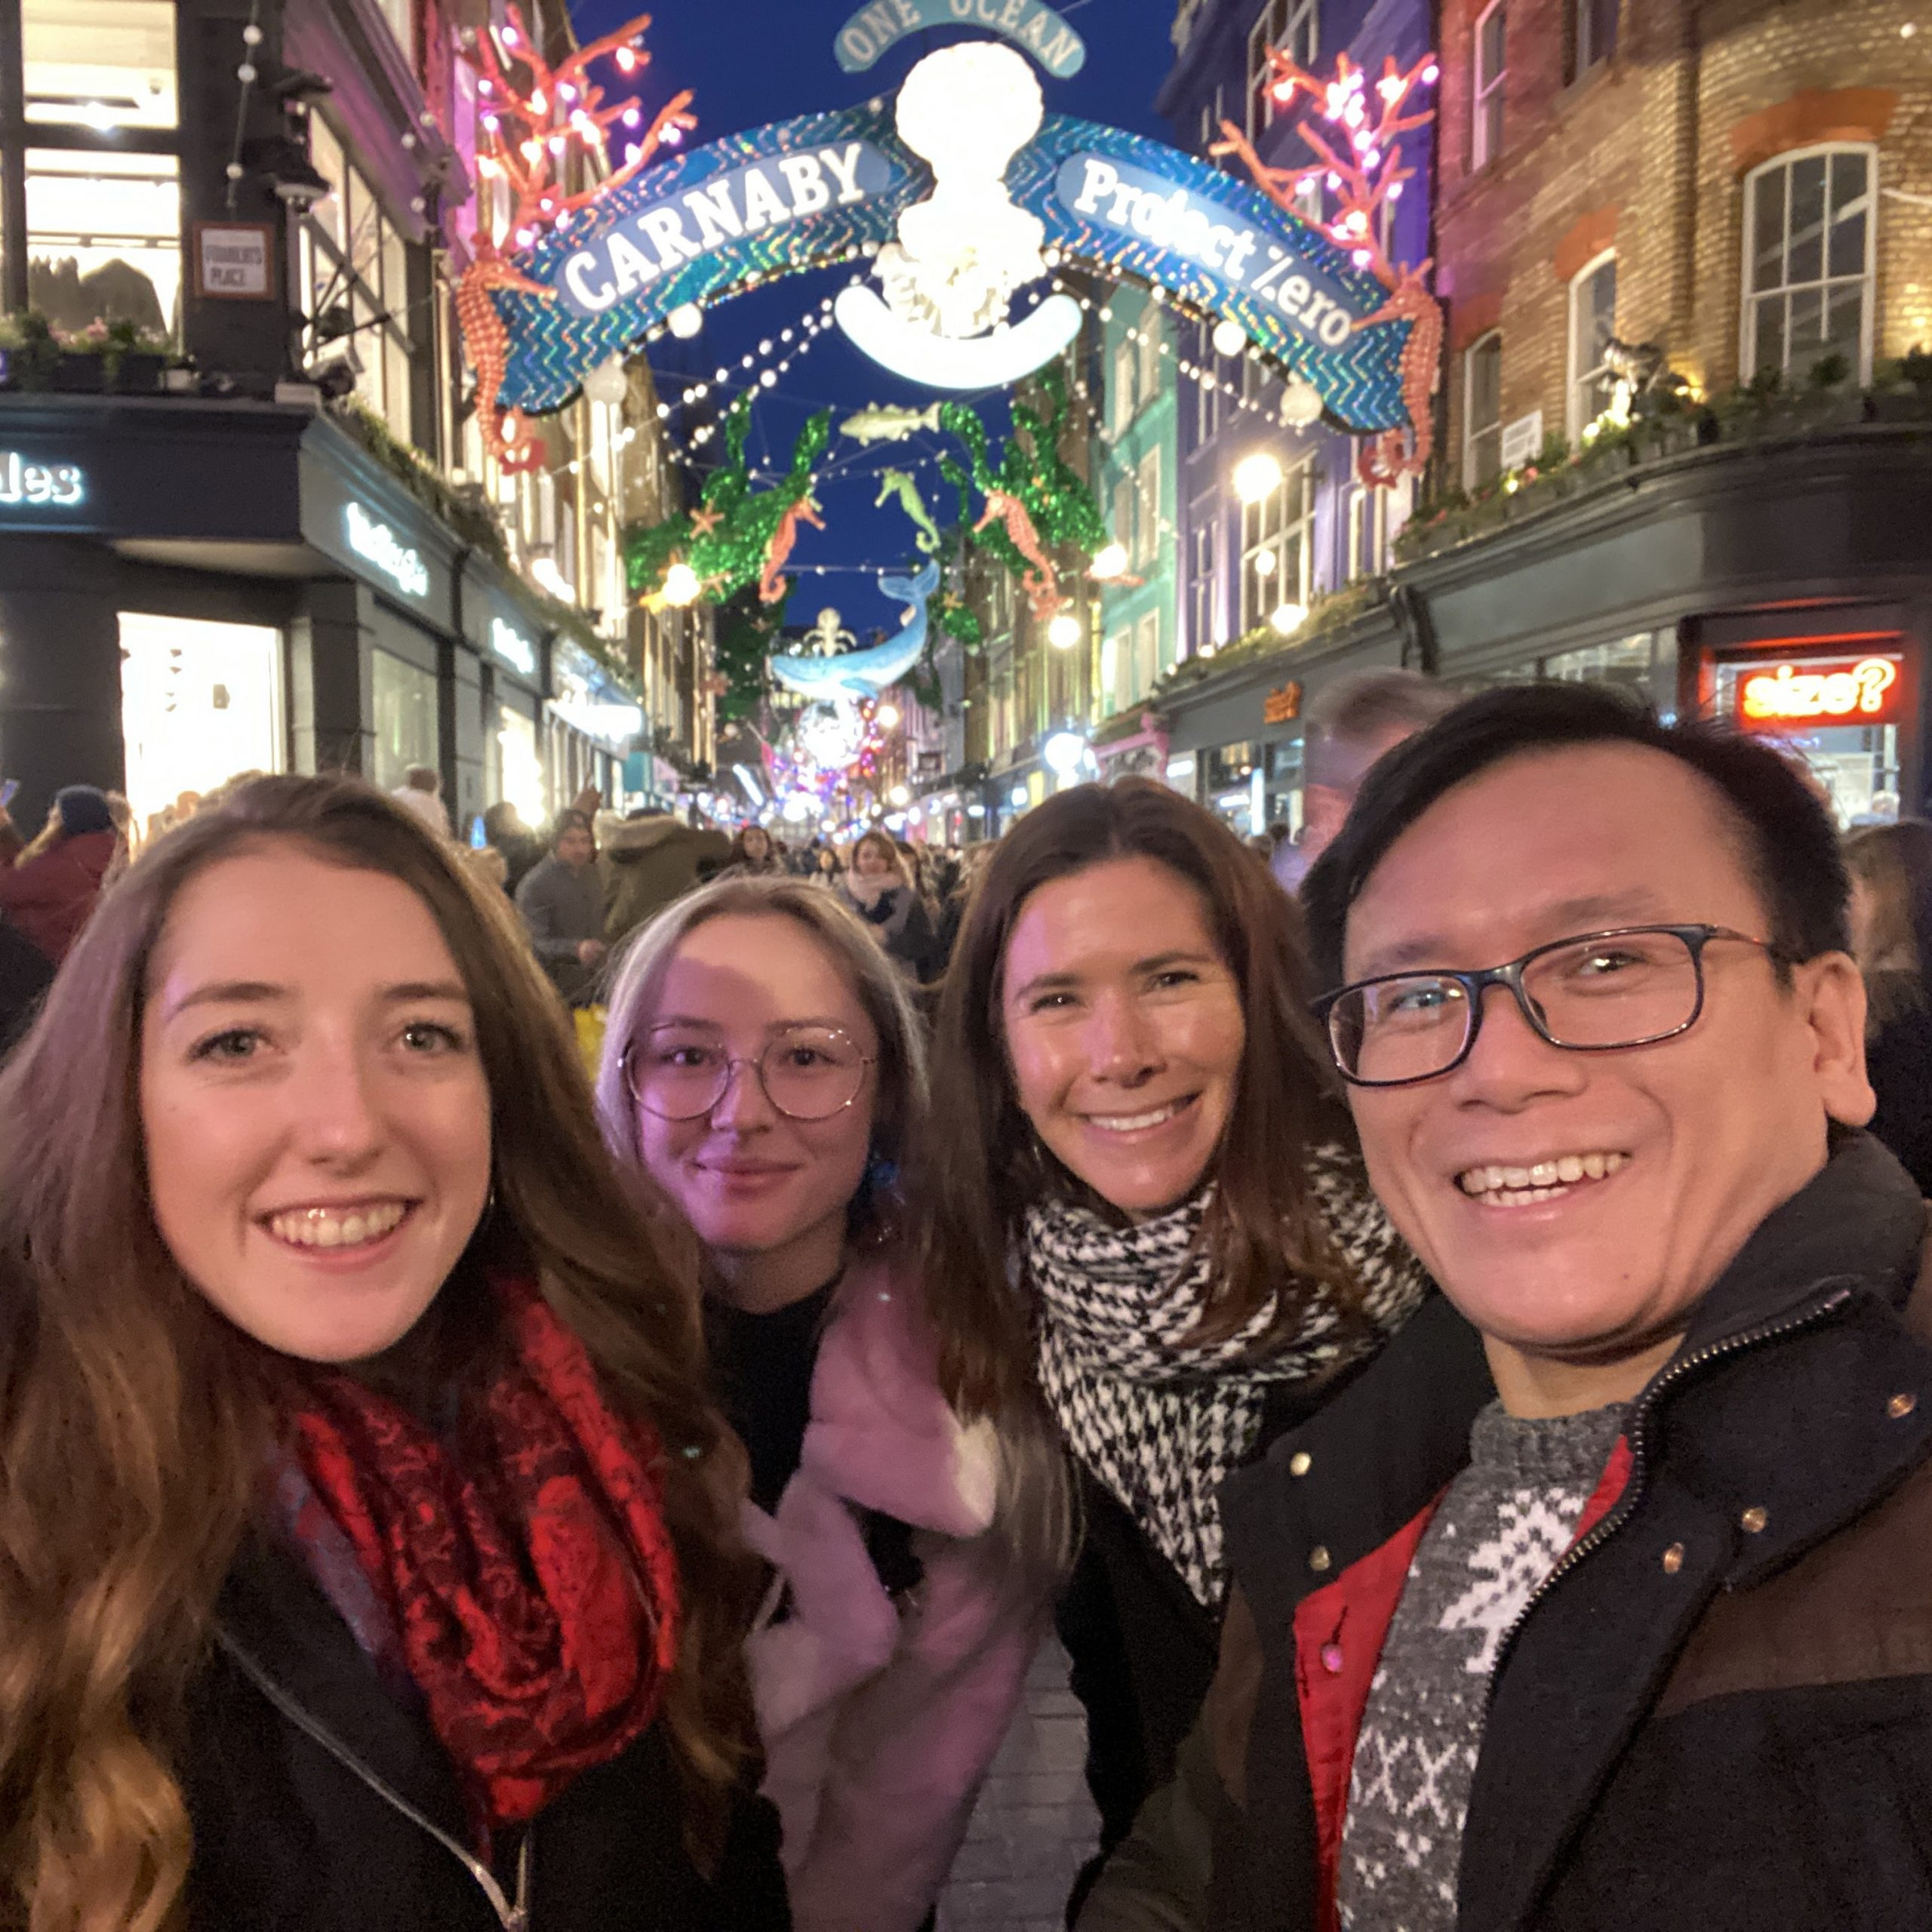 online marketing team out for Christmas